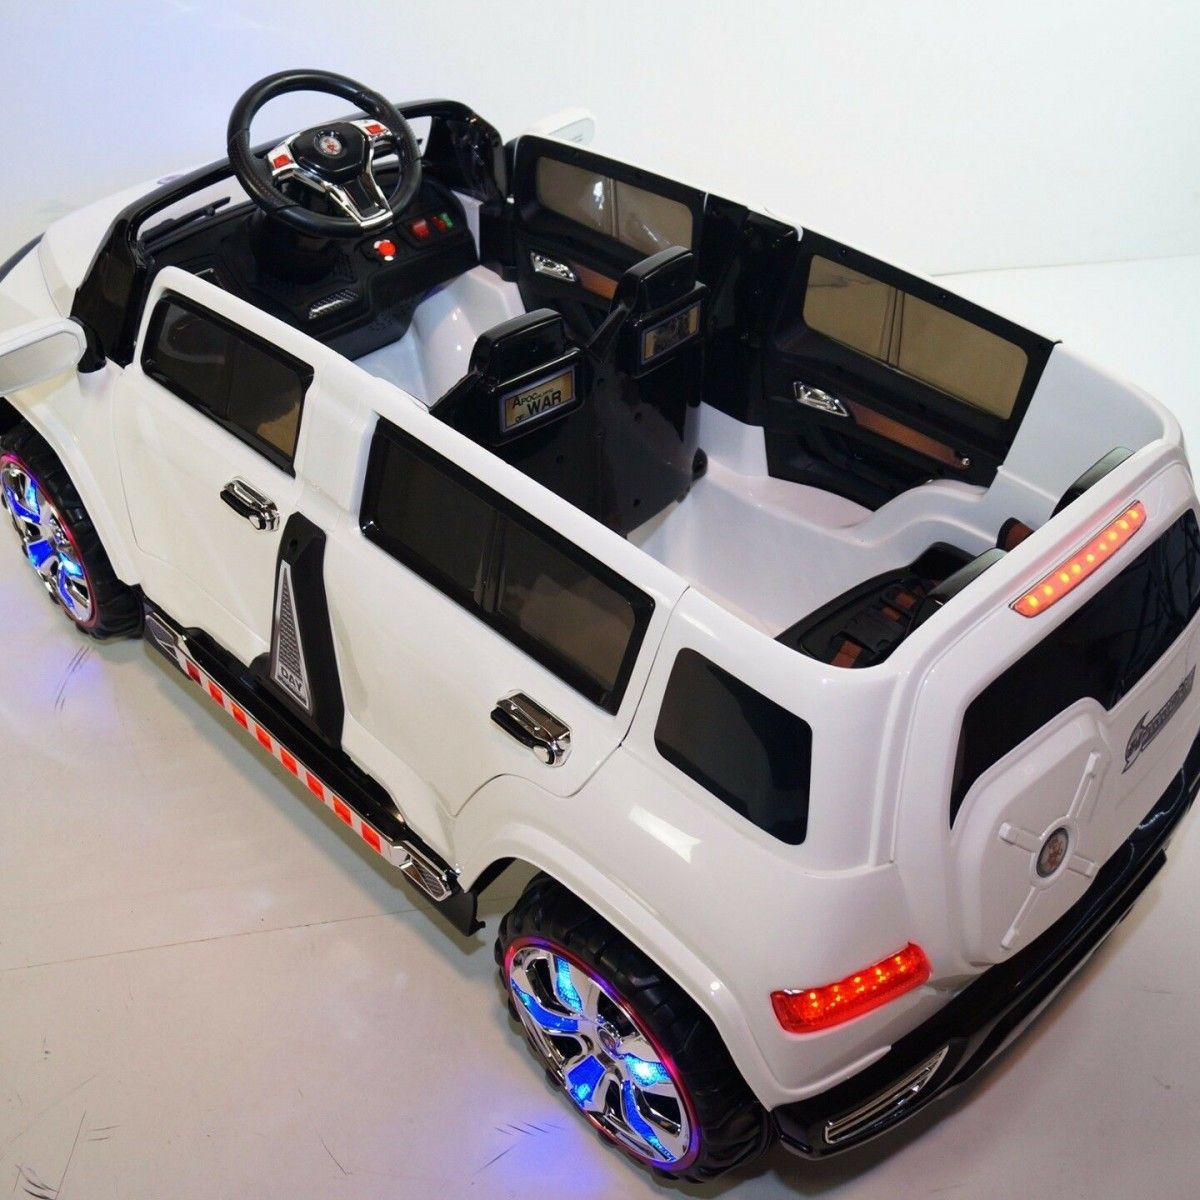 Electric Cars For Kids 4 Seater Unique 4 Seater Kids Electric Car With Remote Co In 2020 Toy Cars For Kids Kids Power Wheels Electric Cars